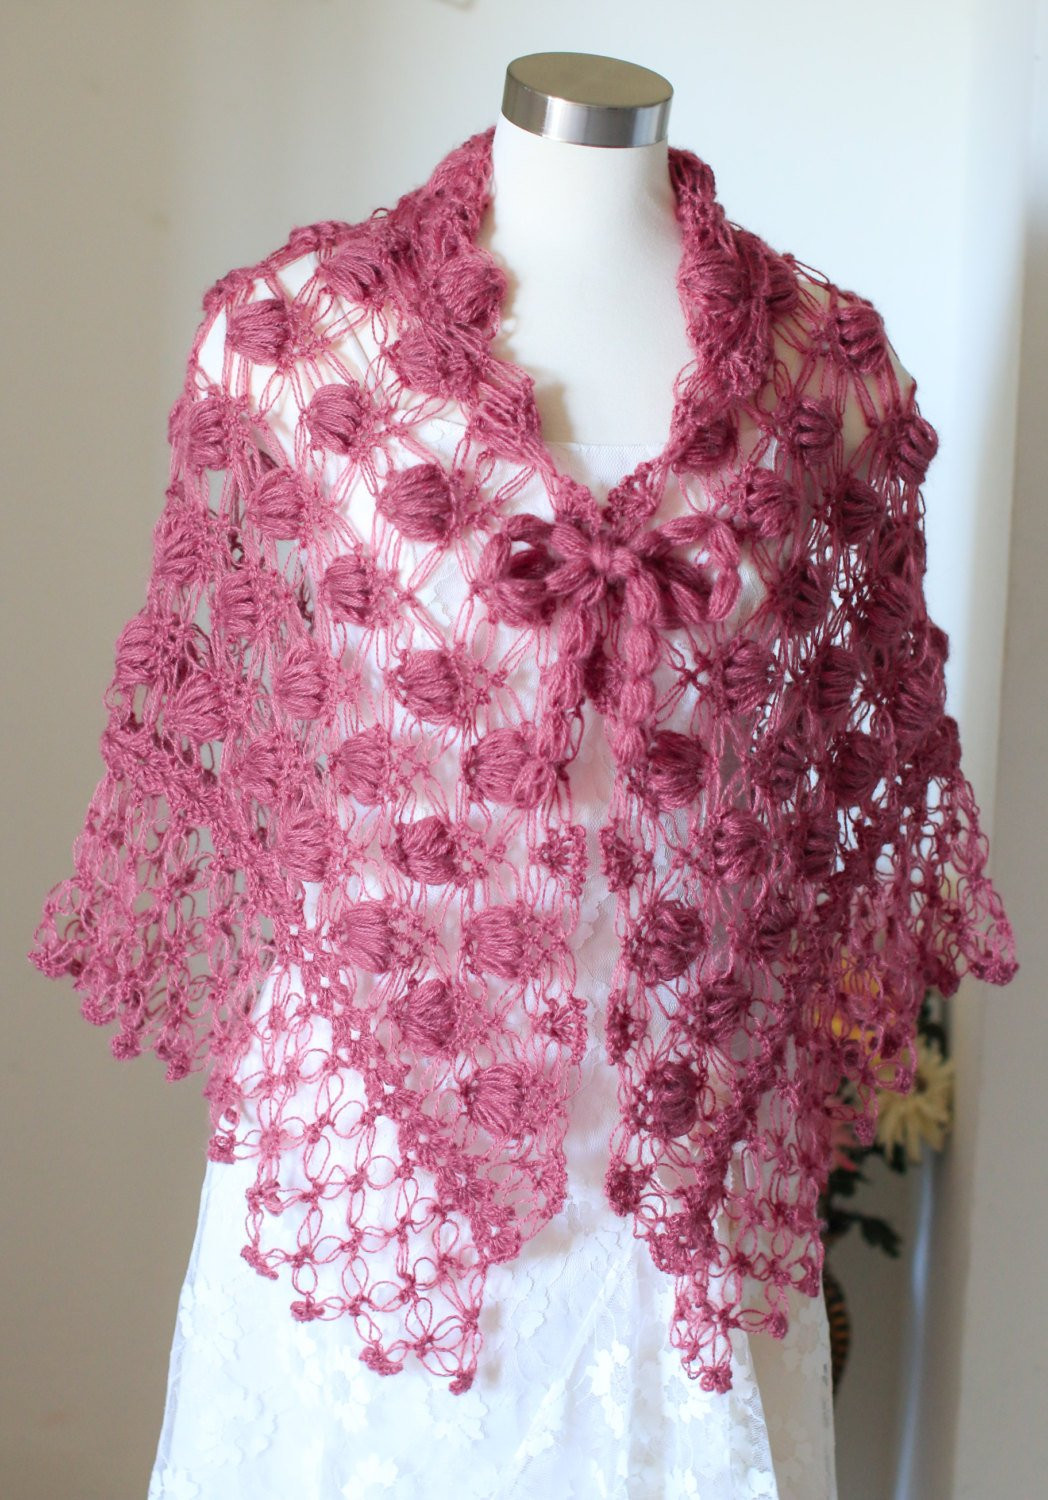 Shawl Crochet Shawl Bridal Shawl Bolero Wrap Shrug